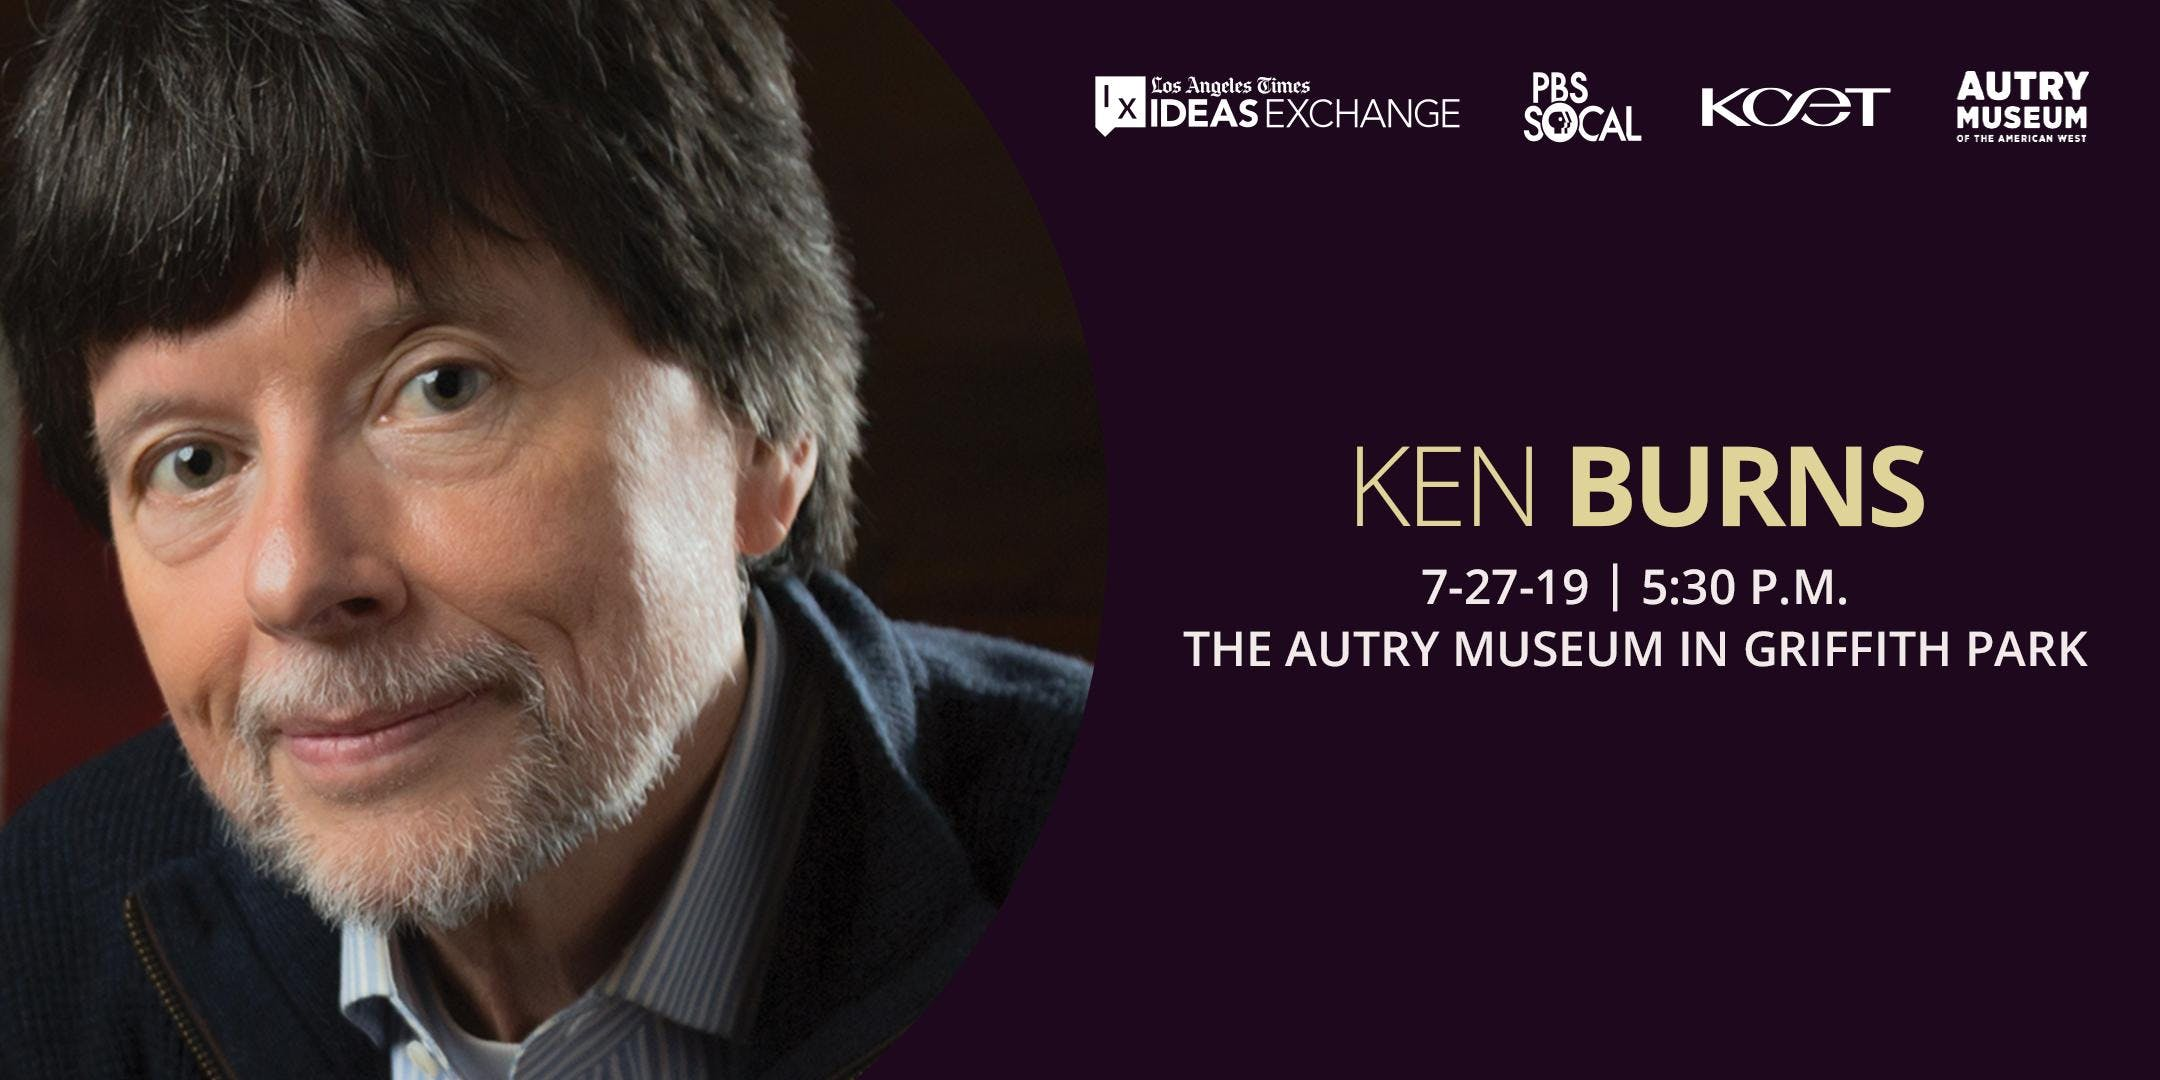 Los Angeles Times Ideas Exchange with Ken Burns